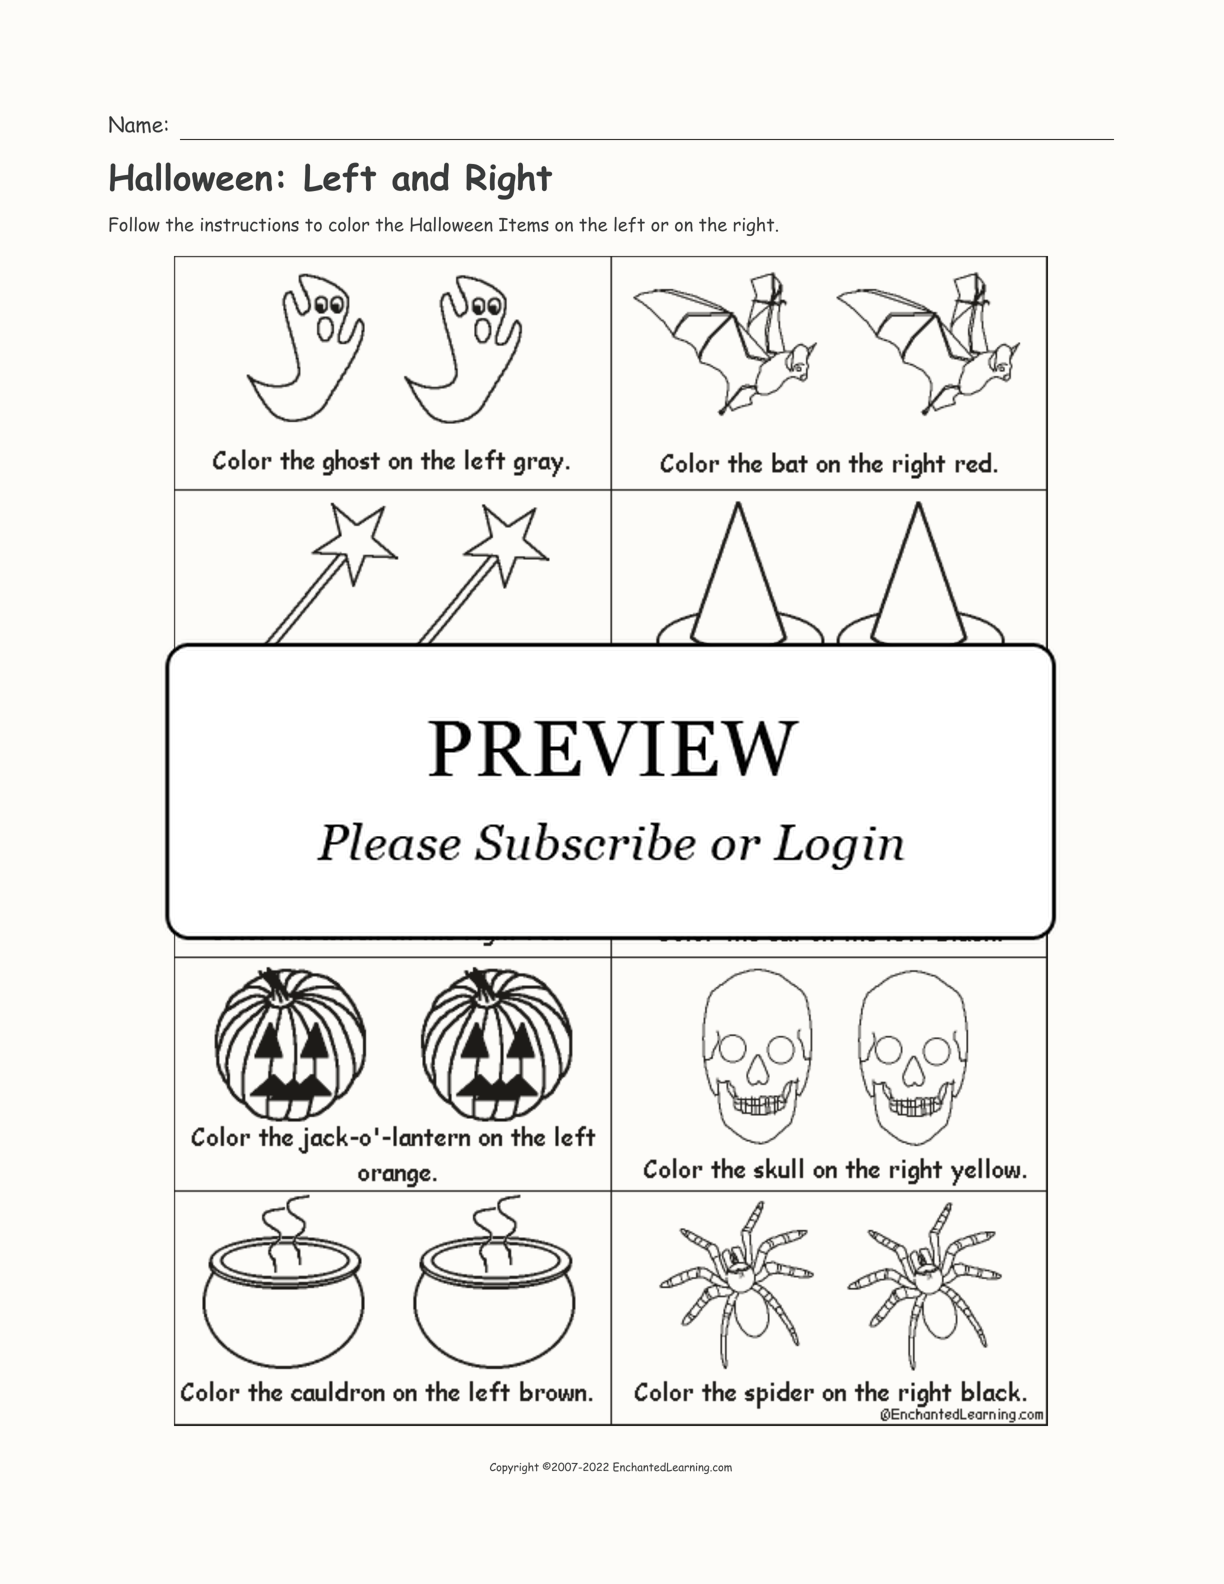 Halloween: Left and Right interactive worksheet page 1